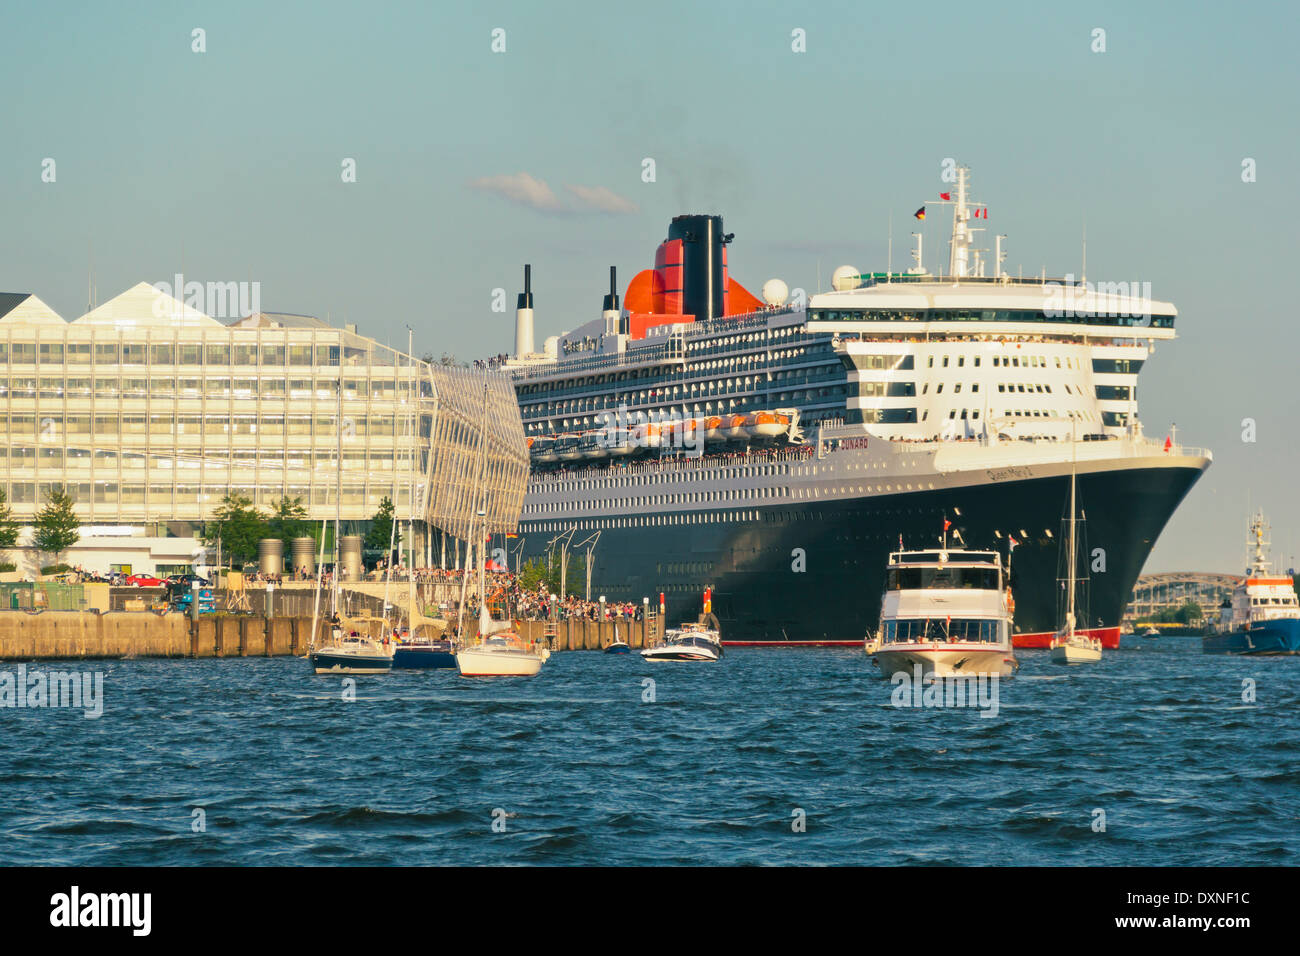 Germany, Hamburg, Cruise liner Queen Mary 2 at Unilever House - Stock Image